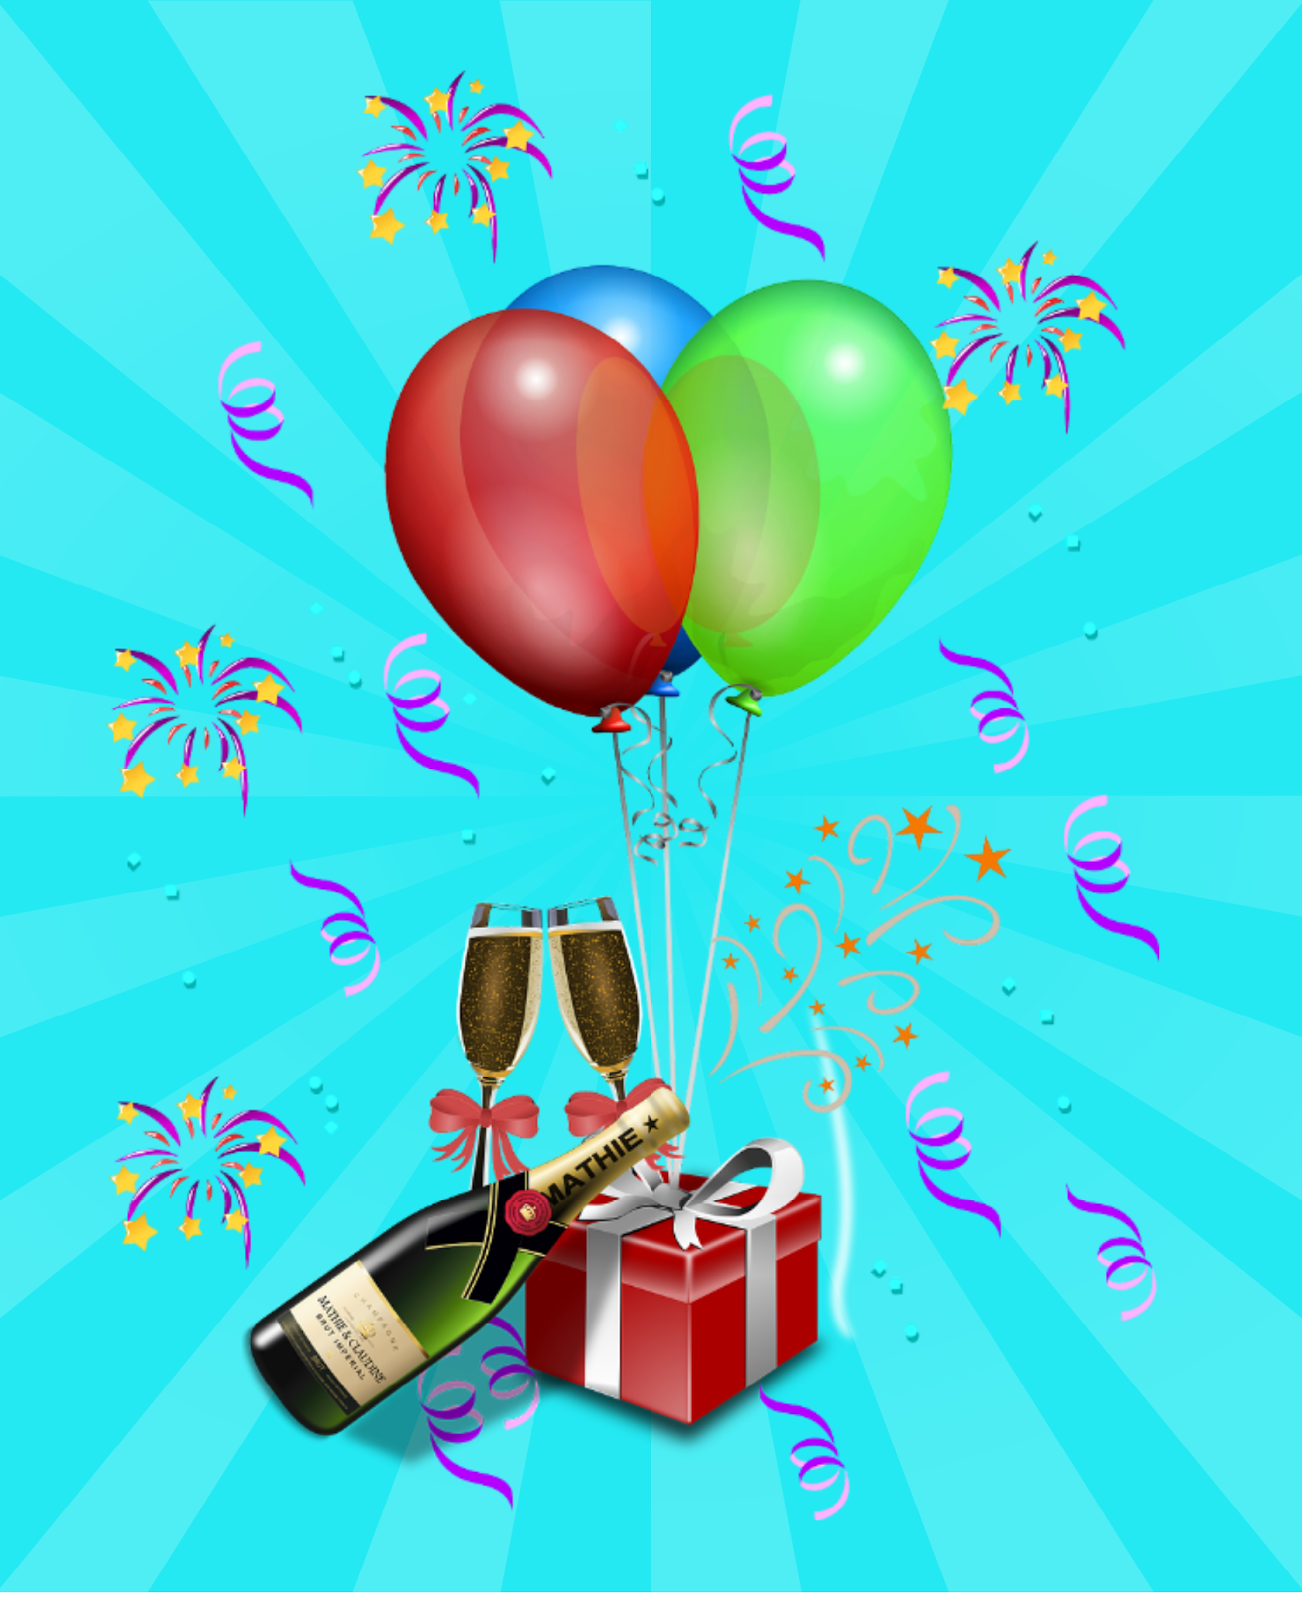 Geeky tool for making custom stickers labels geeky